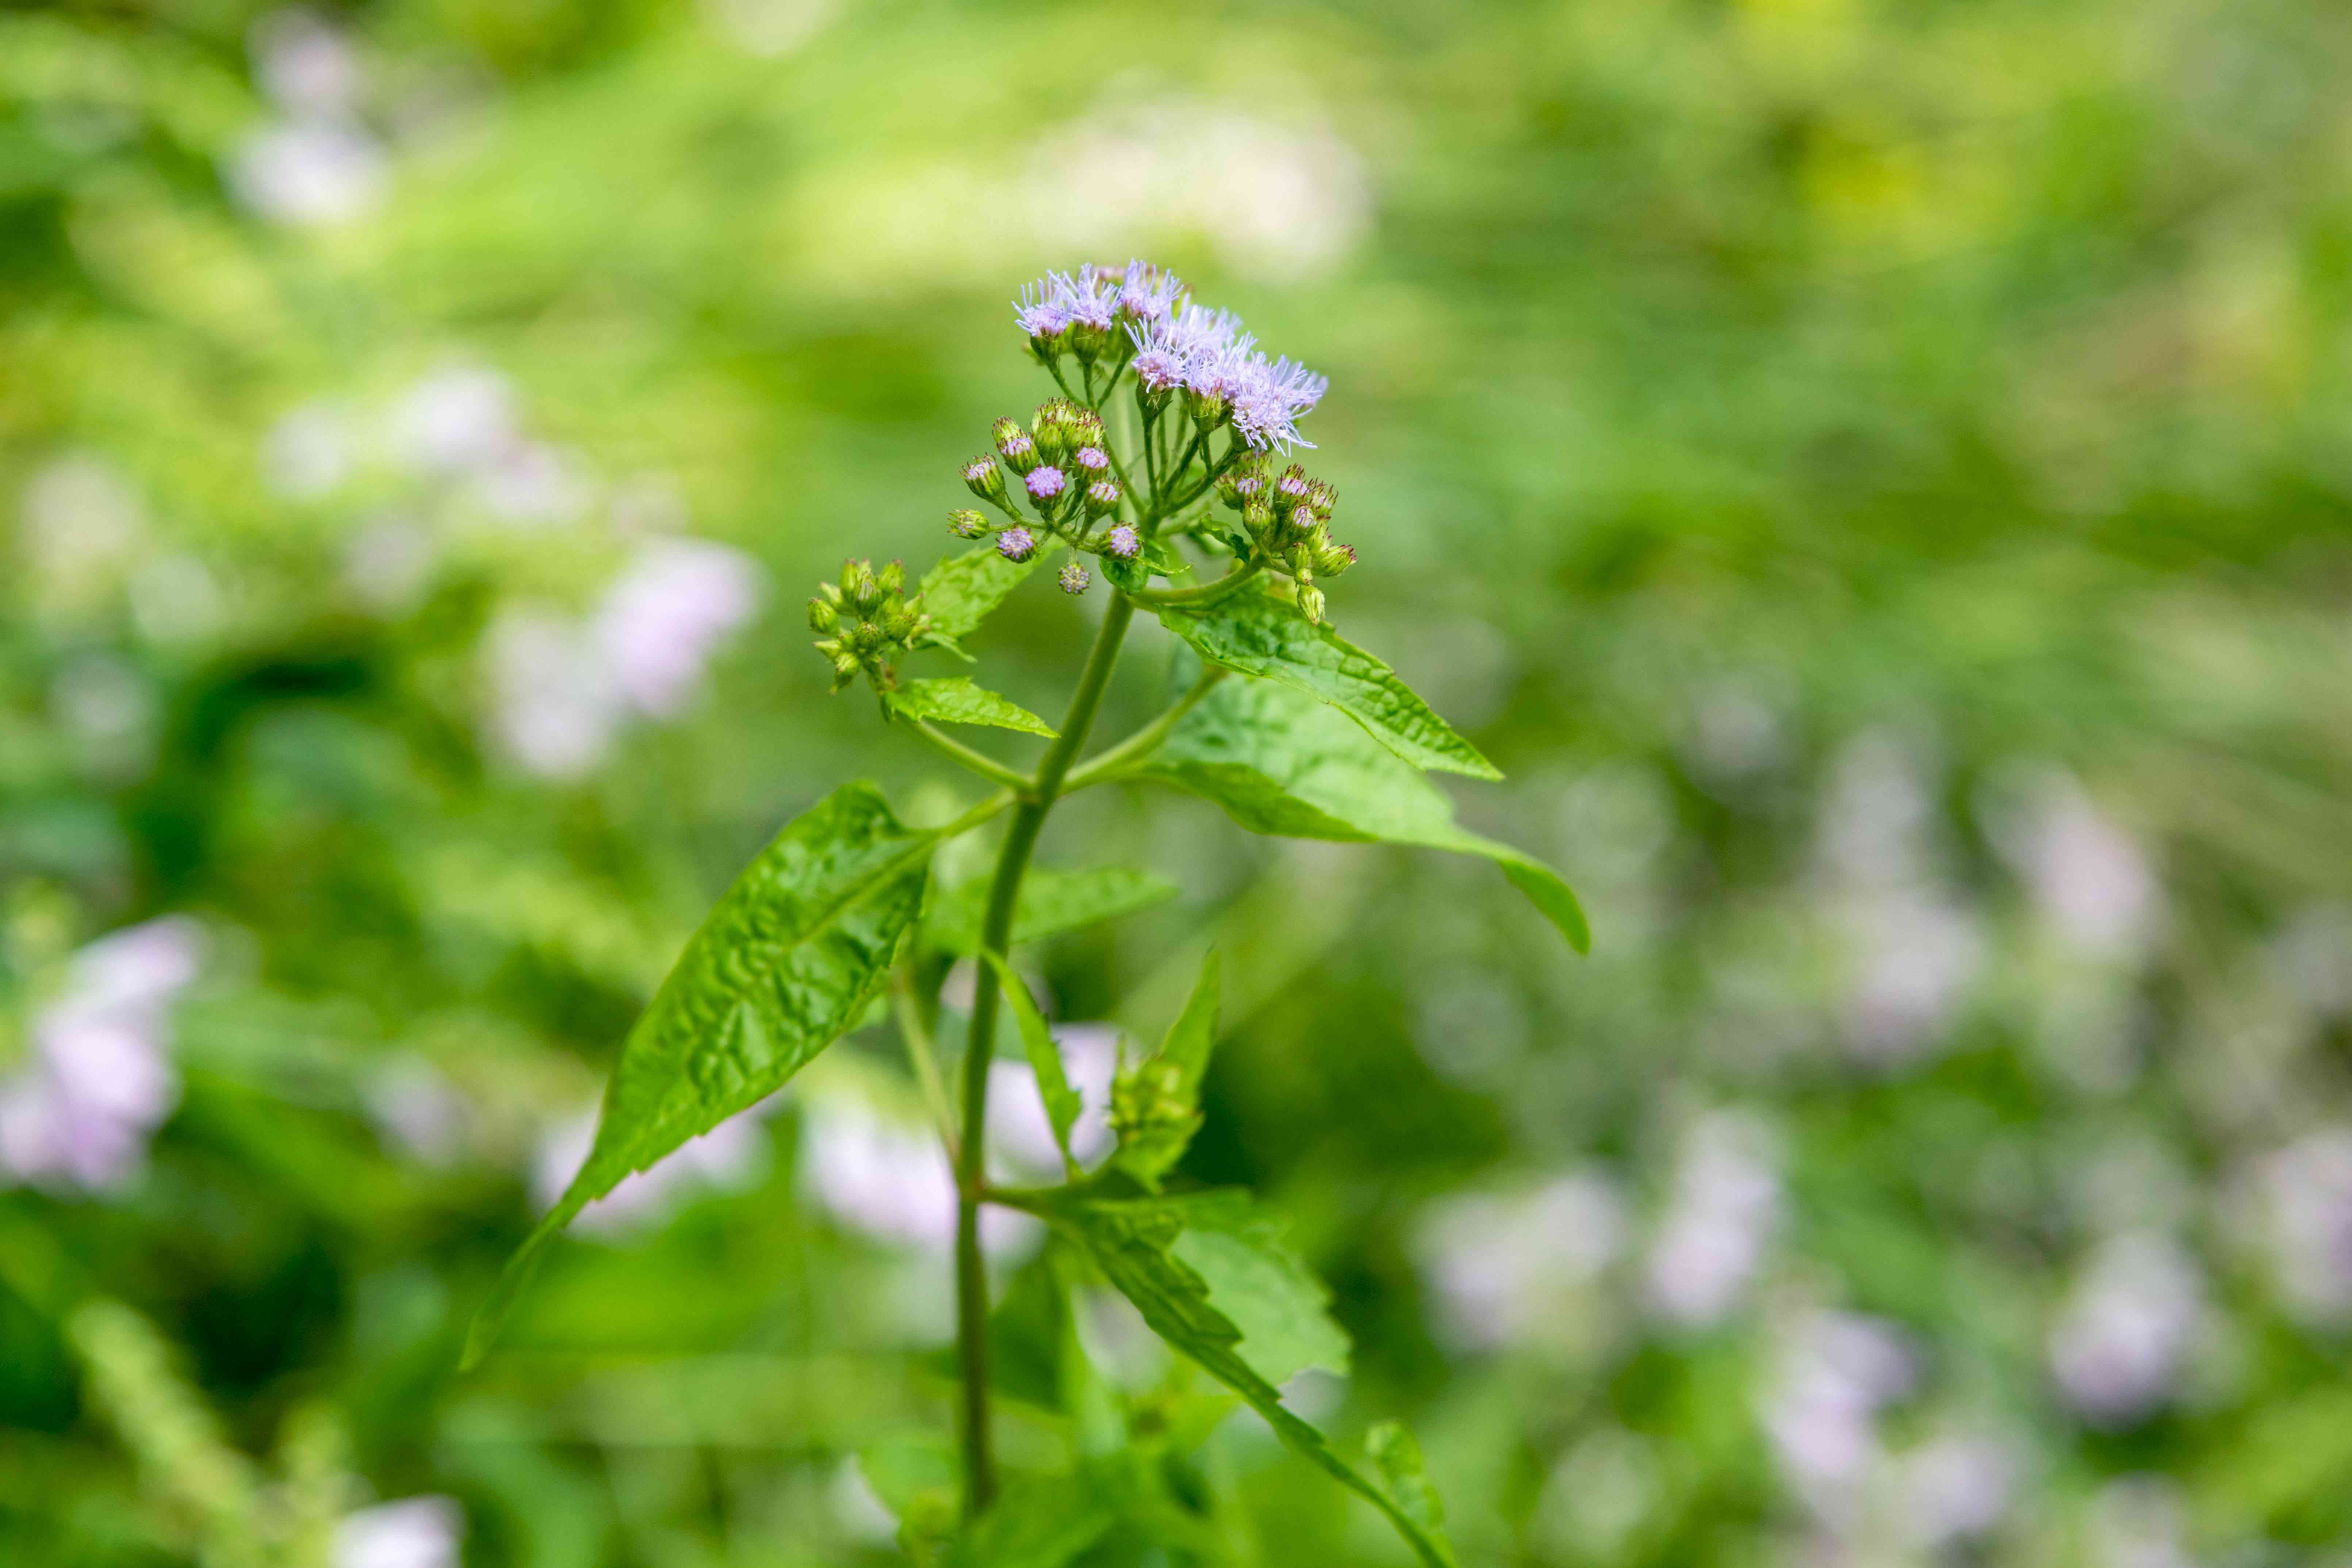 Blue mistflower with purple-blue fuzzy flowers and buds on top of thin stem